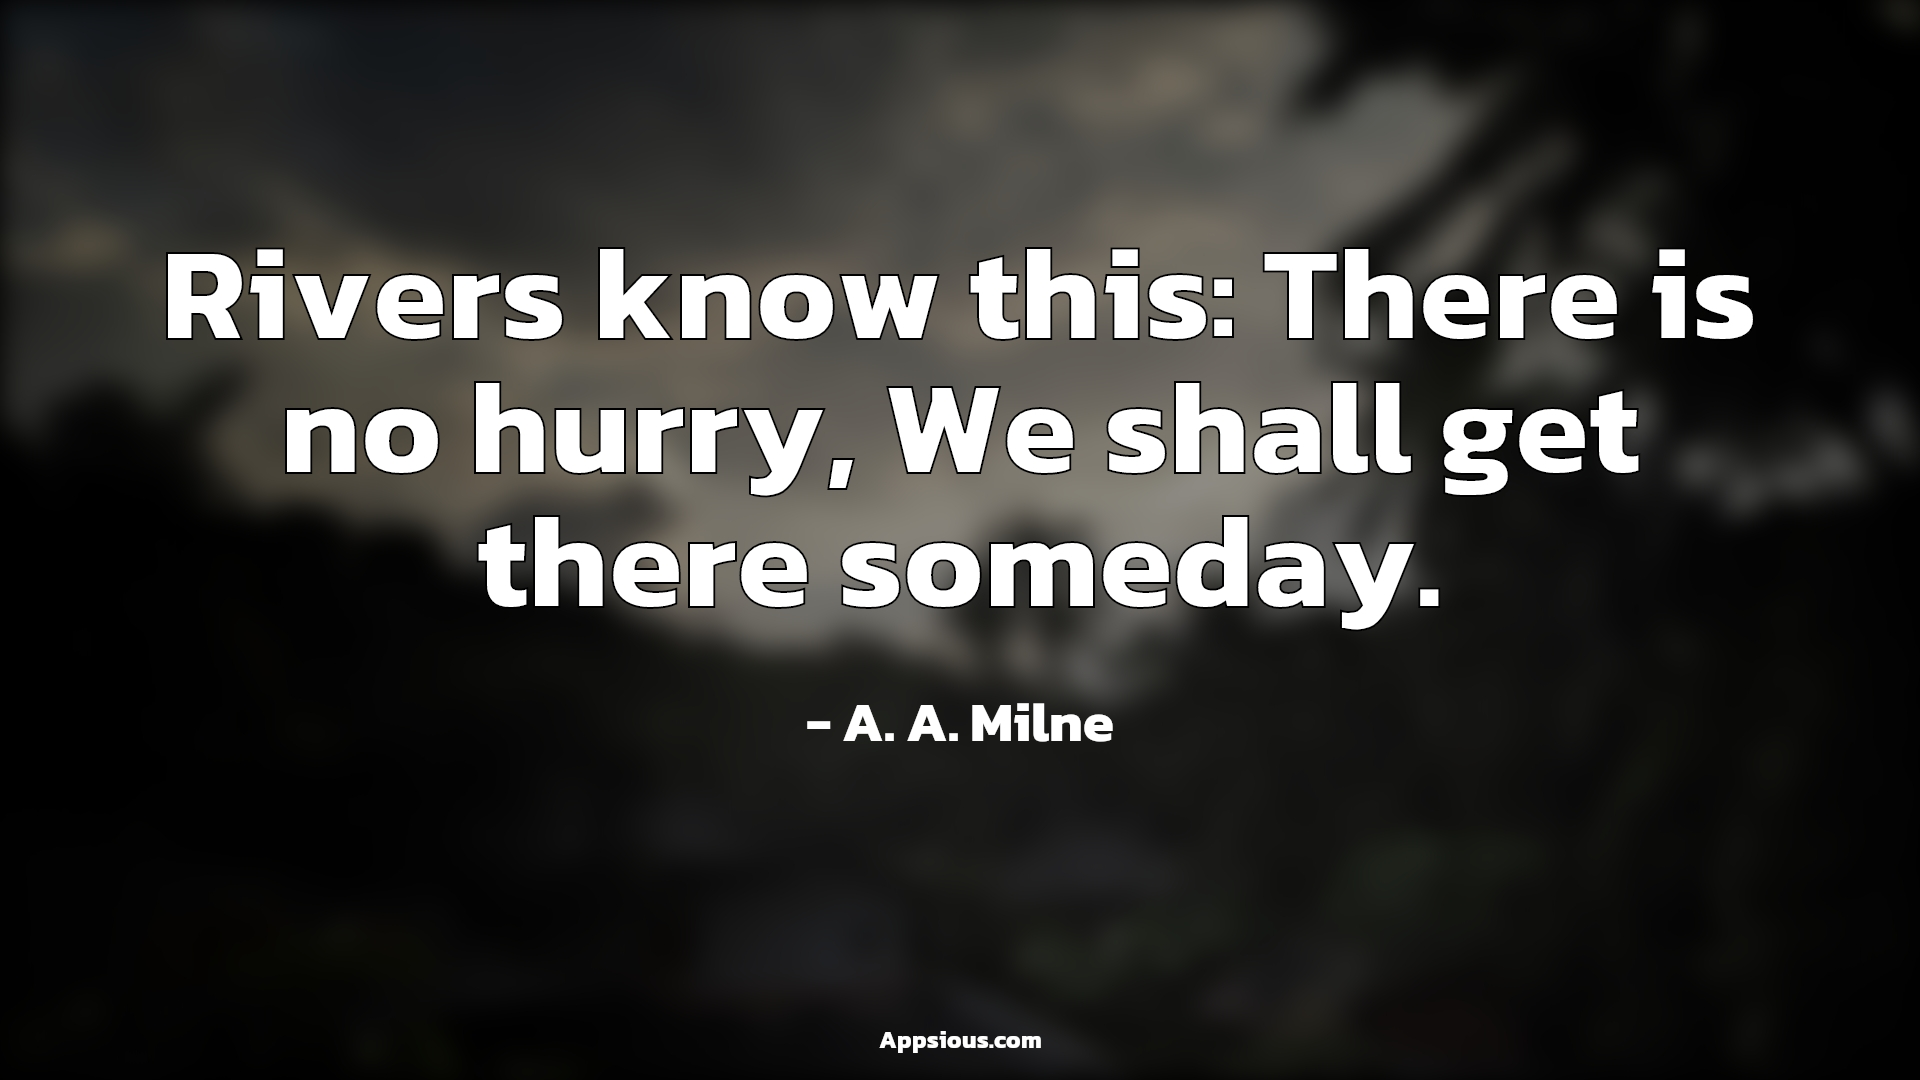 Rivers know this: There is no hurry, We shall get there someday.